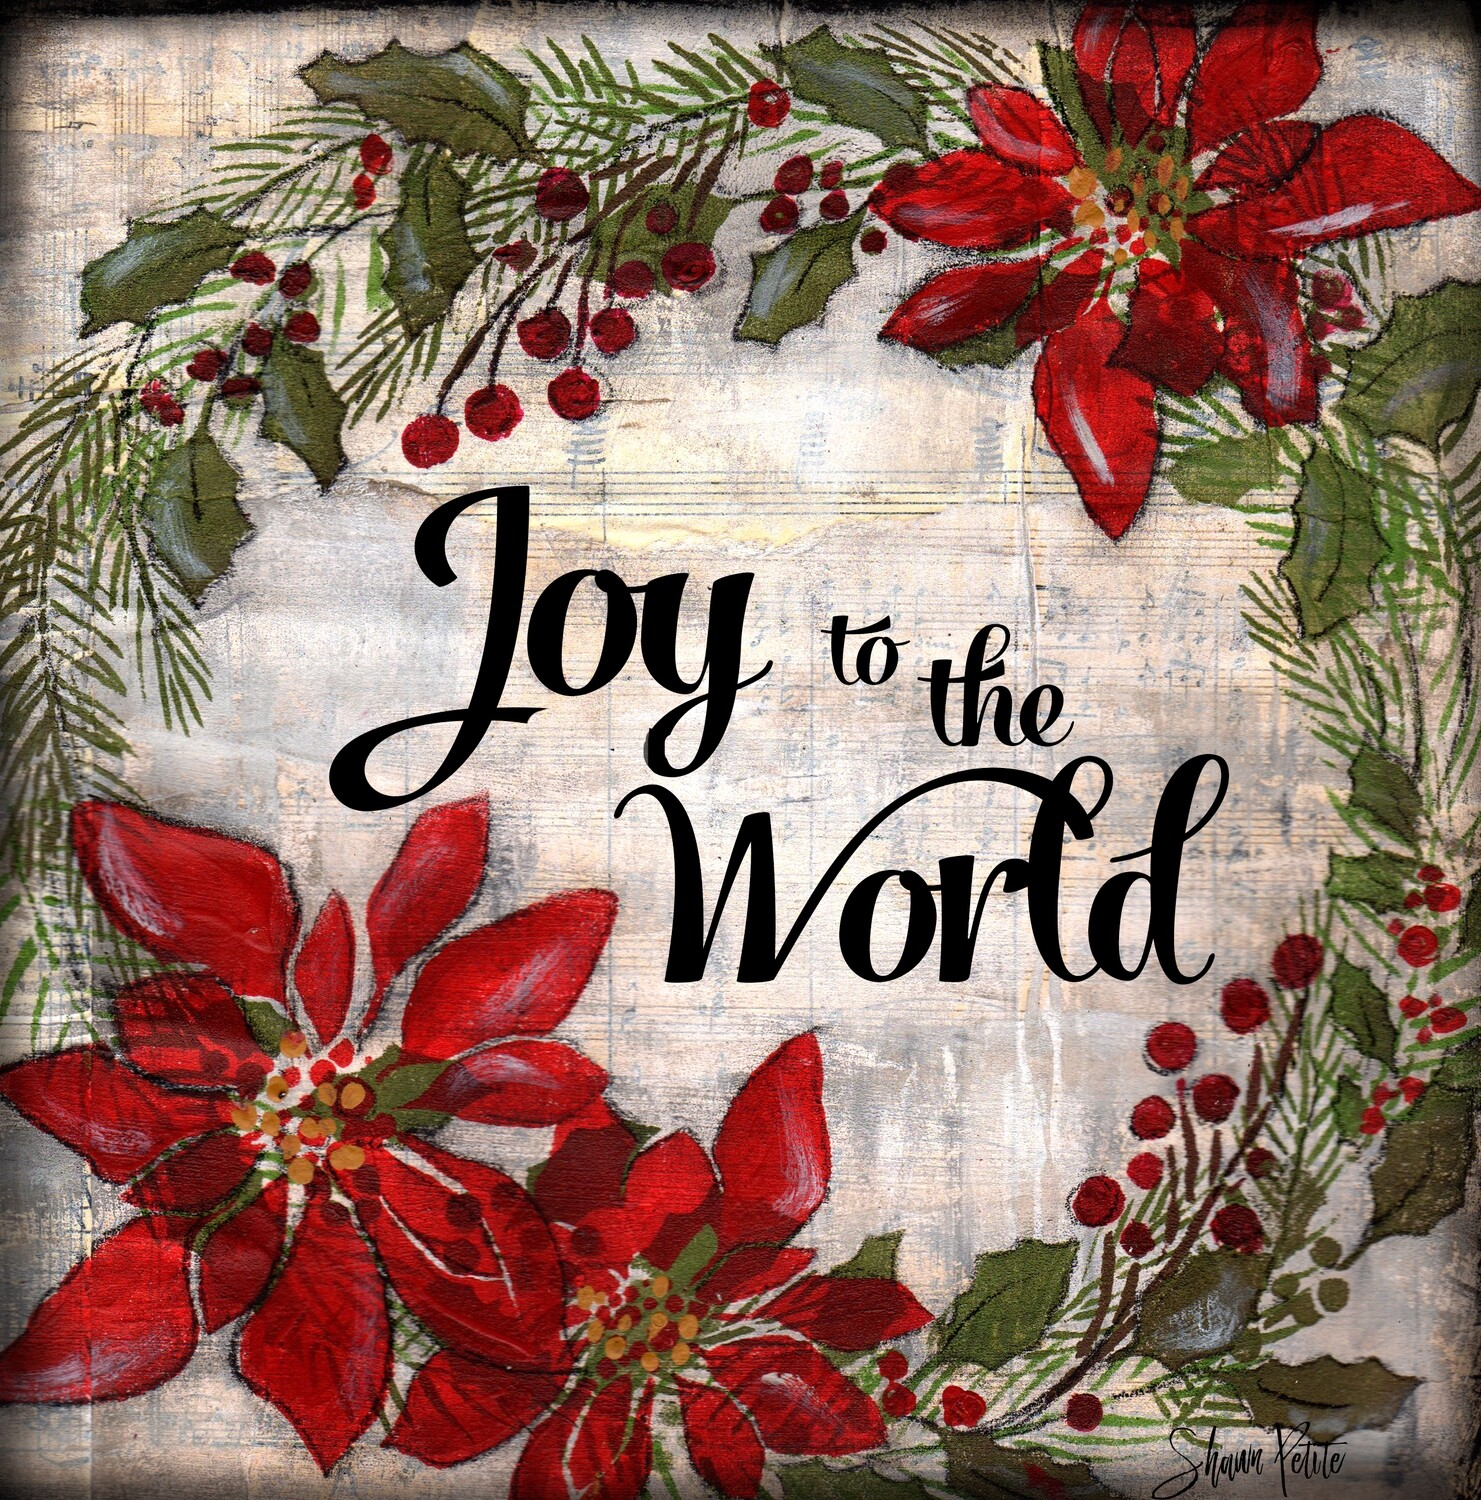 """Joy to the World"" Print on Wood 6x6 Overstock"